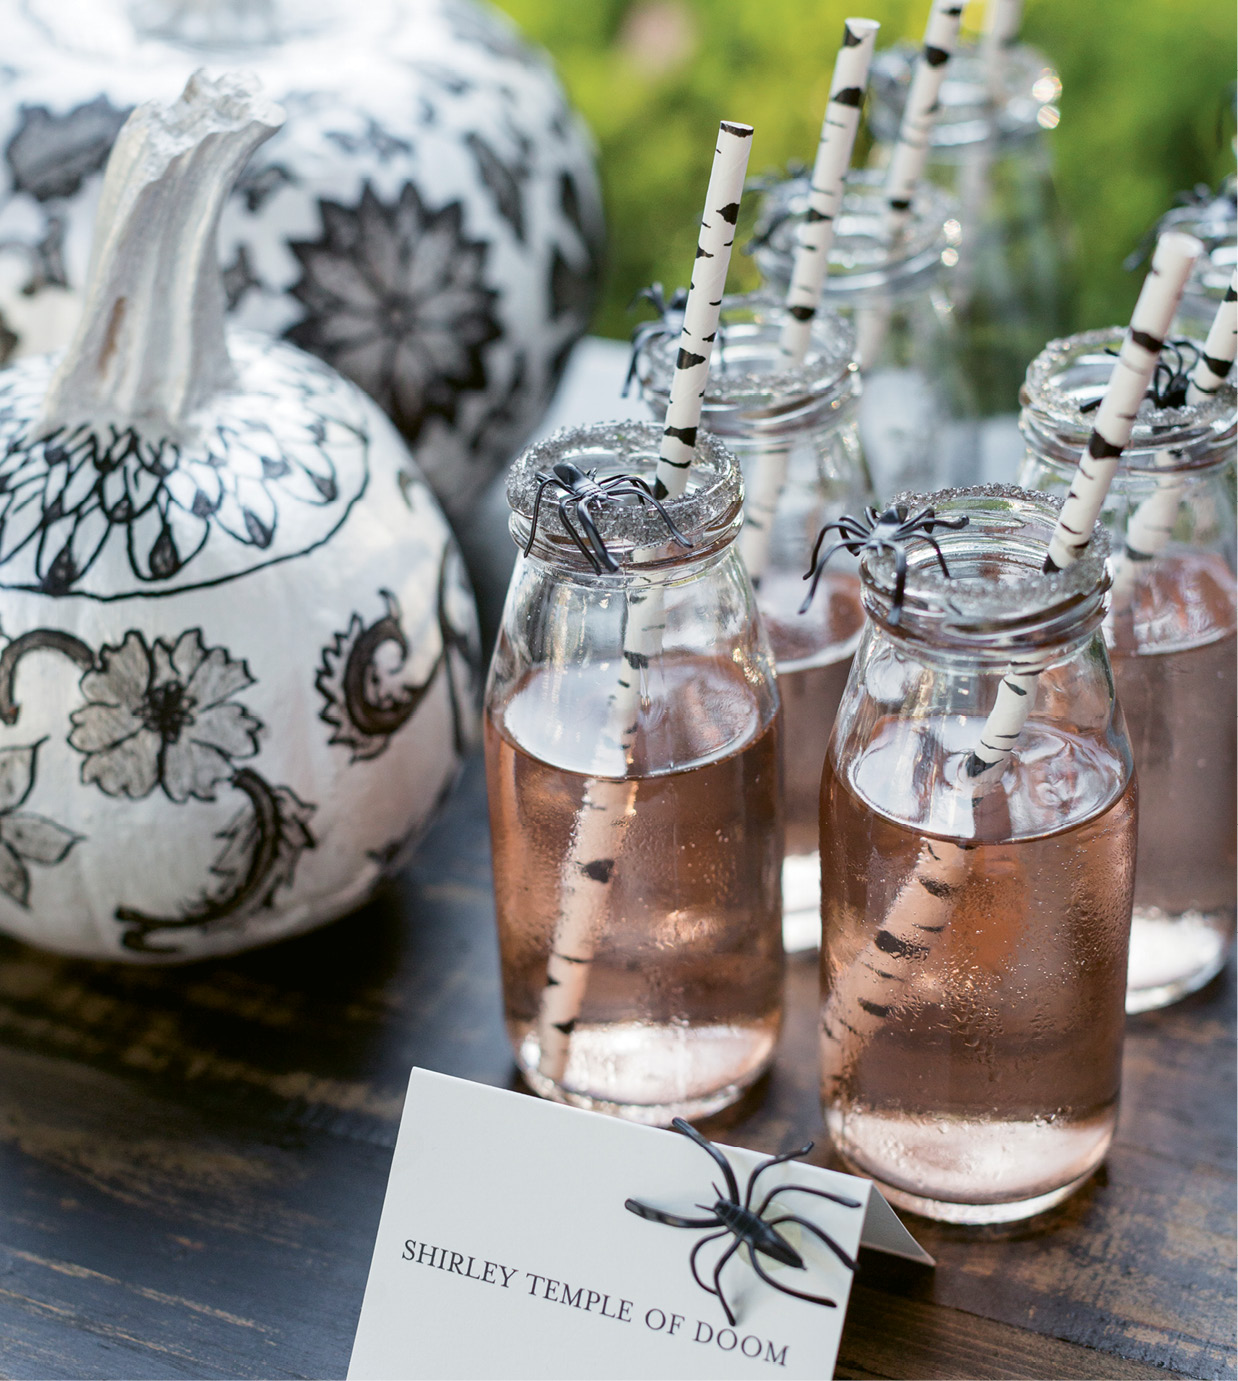 "Patterned straws and spooky garnishes elevate the simplest cocktail, notes Batch bar service's Katie Poole. ""A specialty drink is usually guests' first impression,"" she continues, ""so in a way, it's the microcosm of the entire event."" The jelly-bean bar stays fresh (read: not sticky) thanks to lidded apothecary jars."